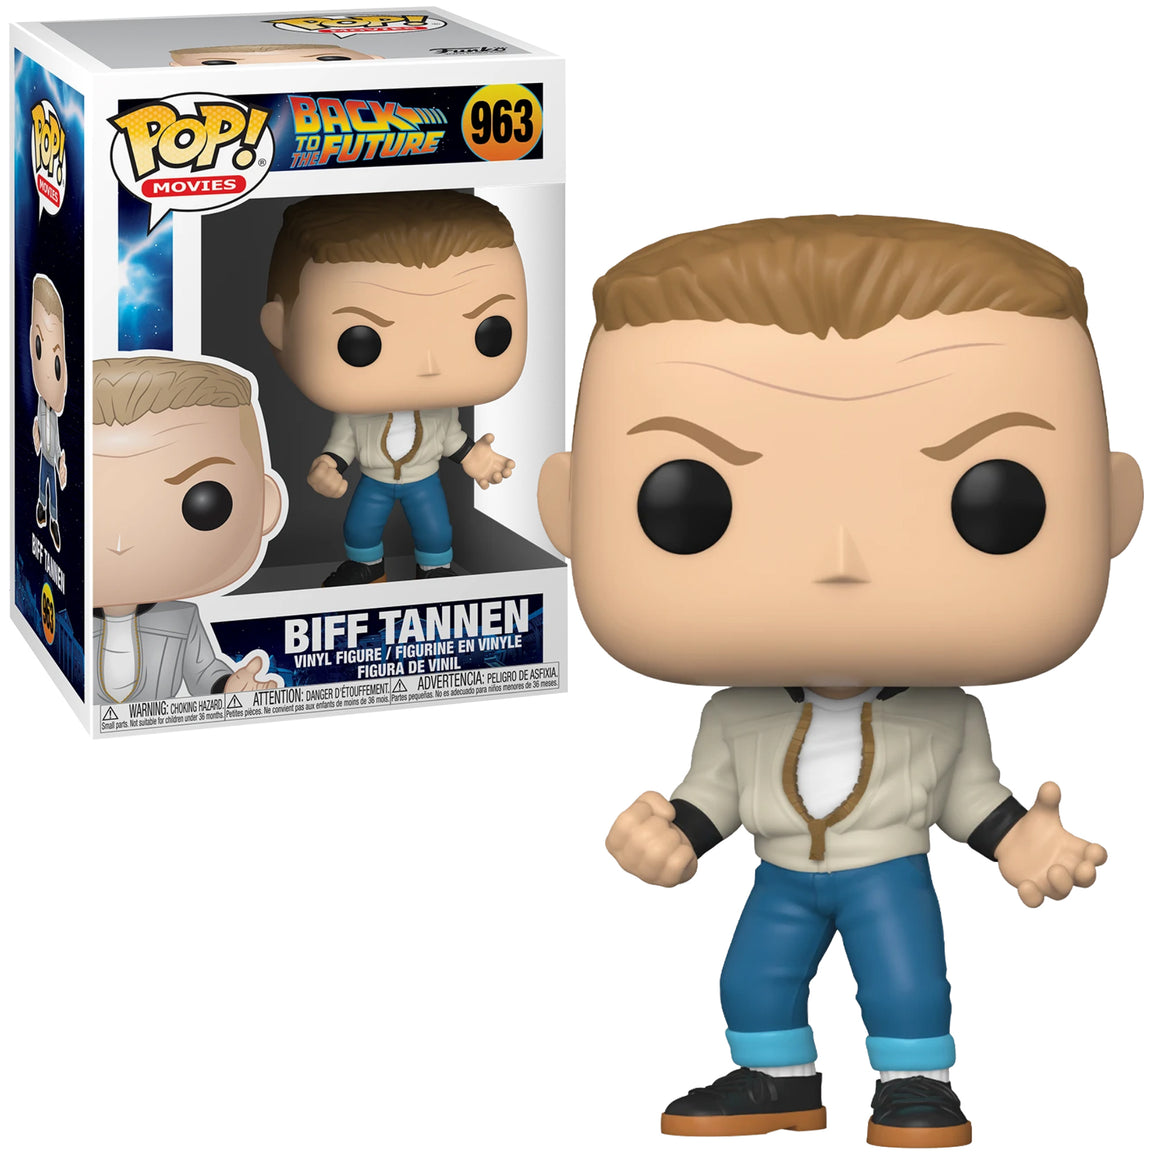 Funko Pop Vinyl Figurine Biff Tannen #963 - Back to the Future